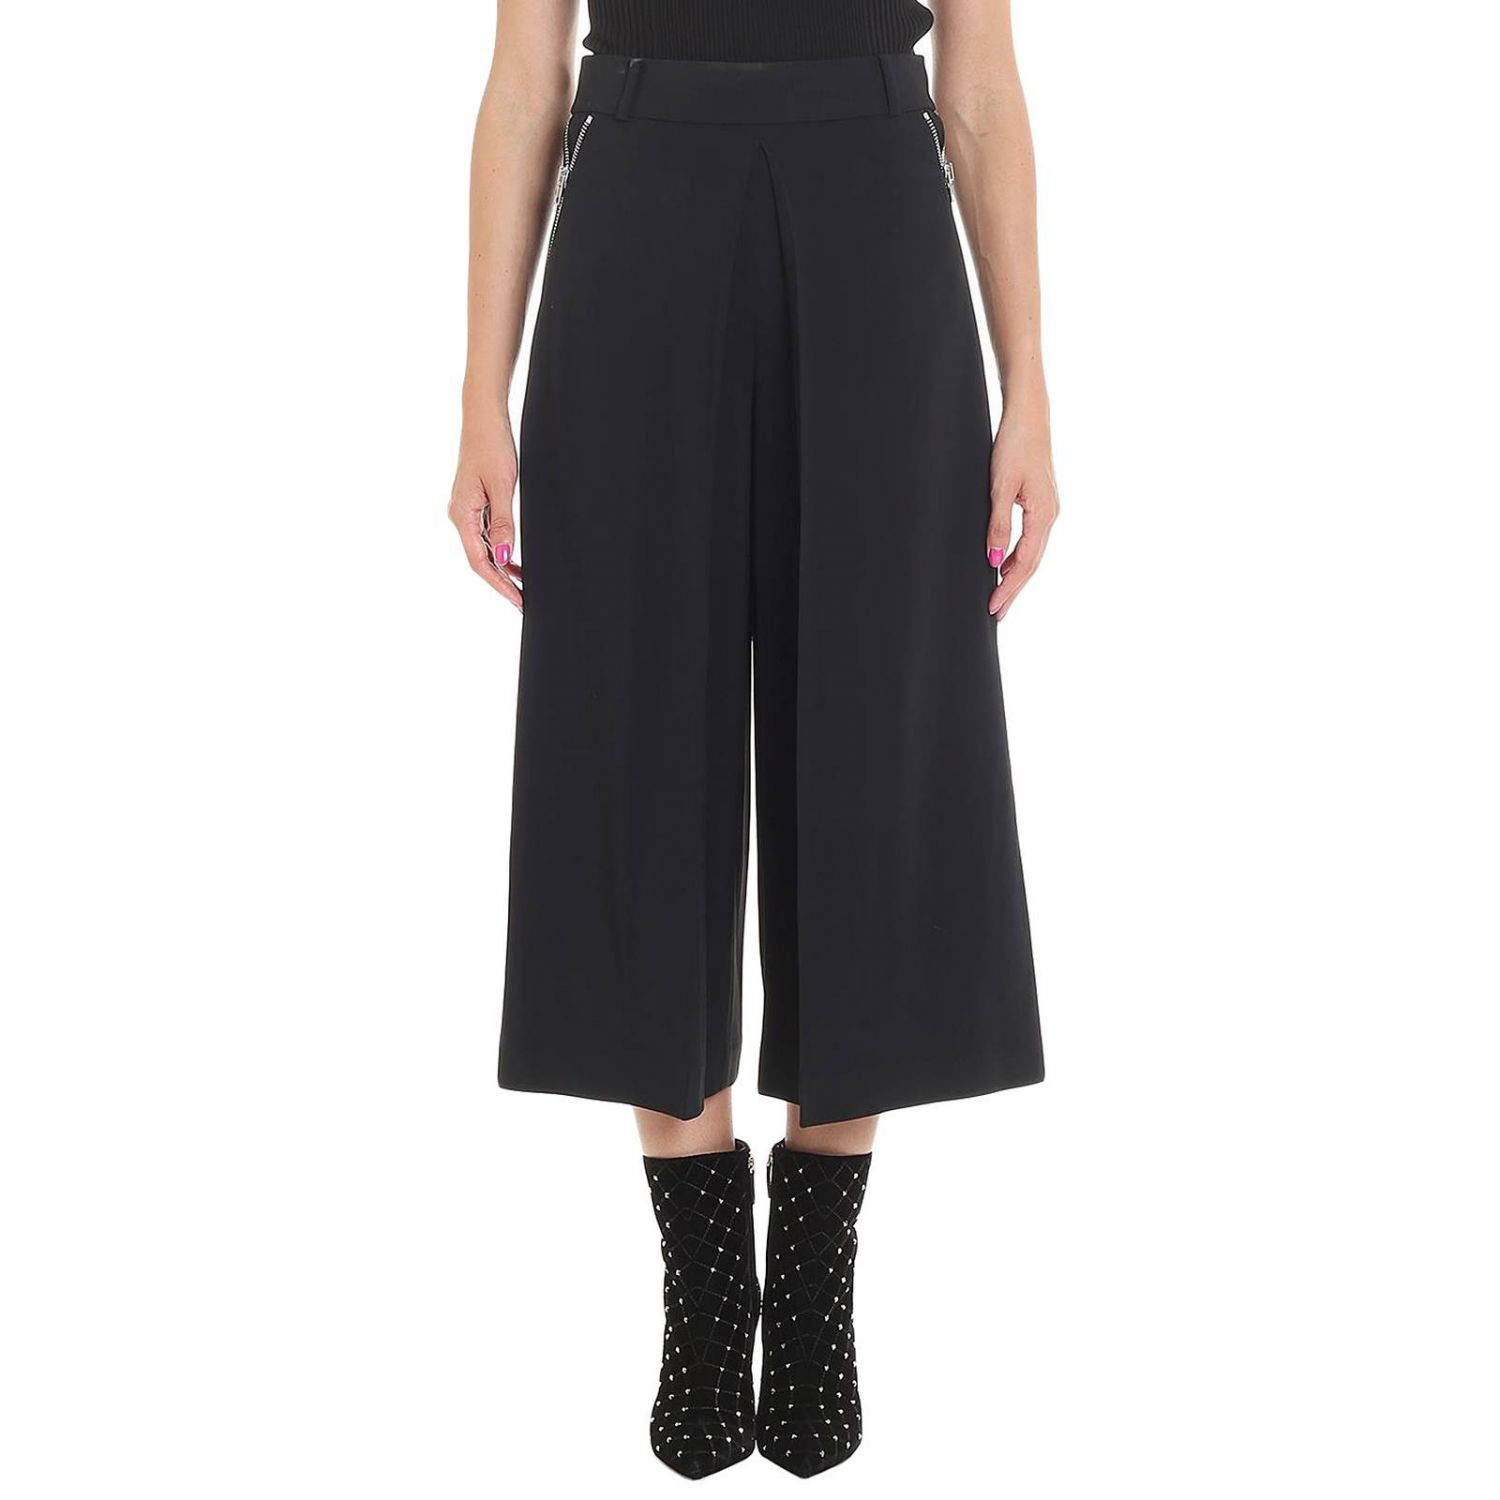 Trousers Alexander Wang: Trousers women Alexander Wang black 1